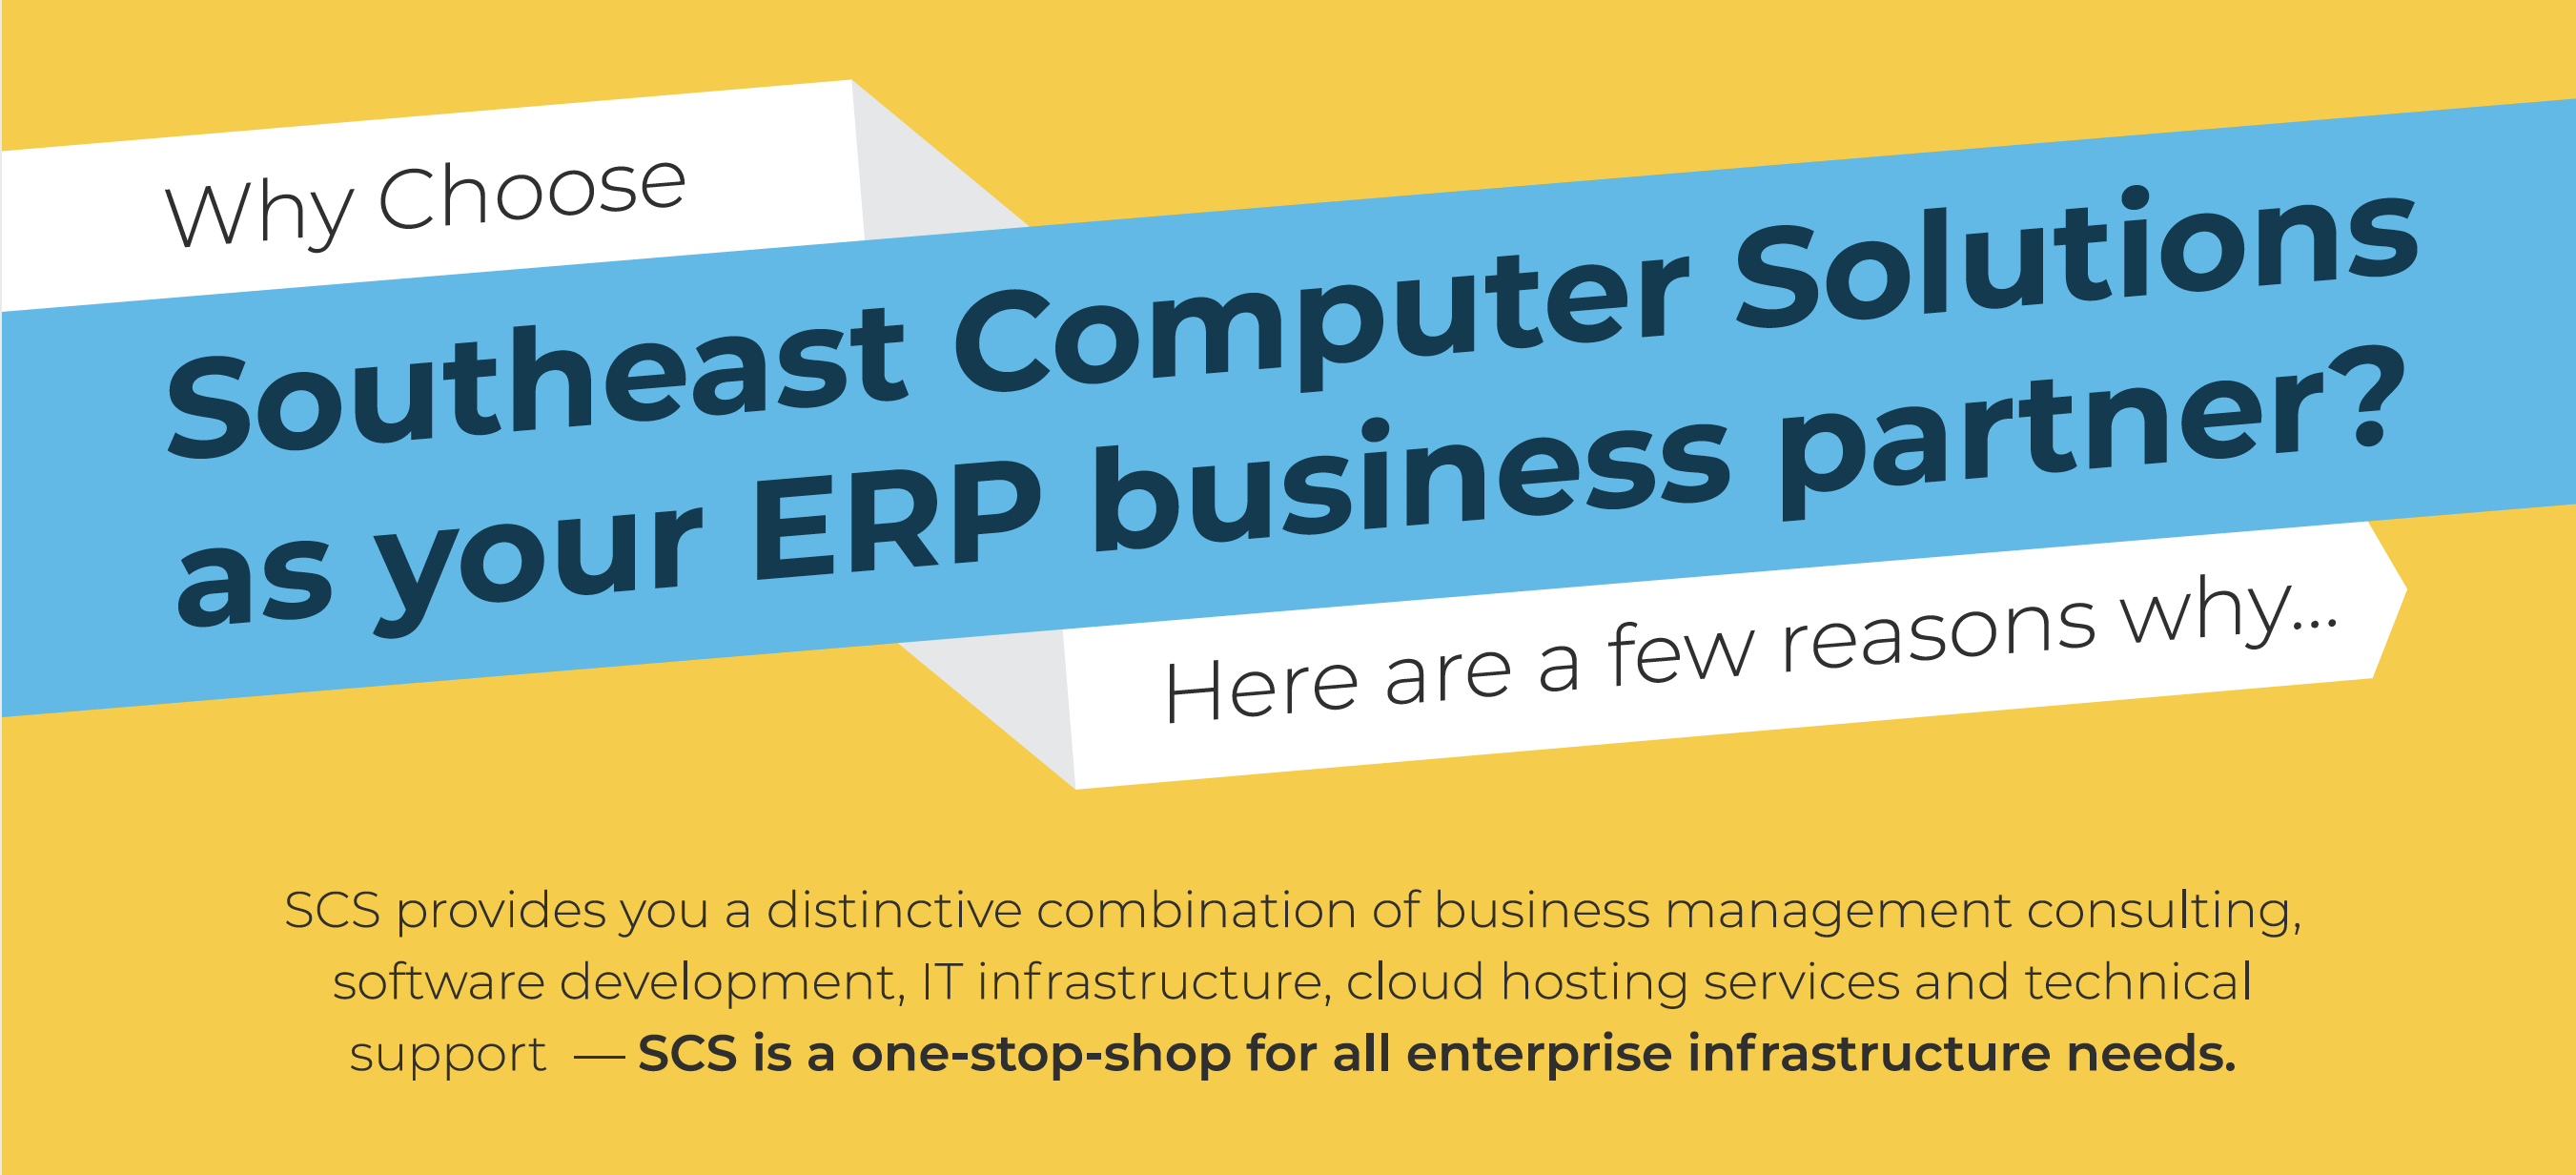 Why Choose Southeast Computer Solutions Infographic